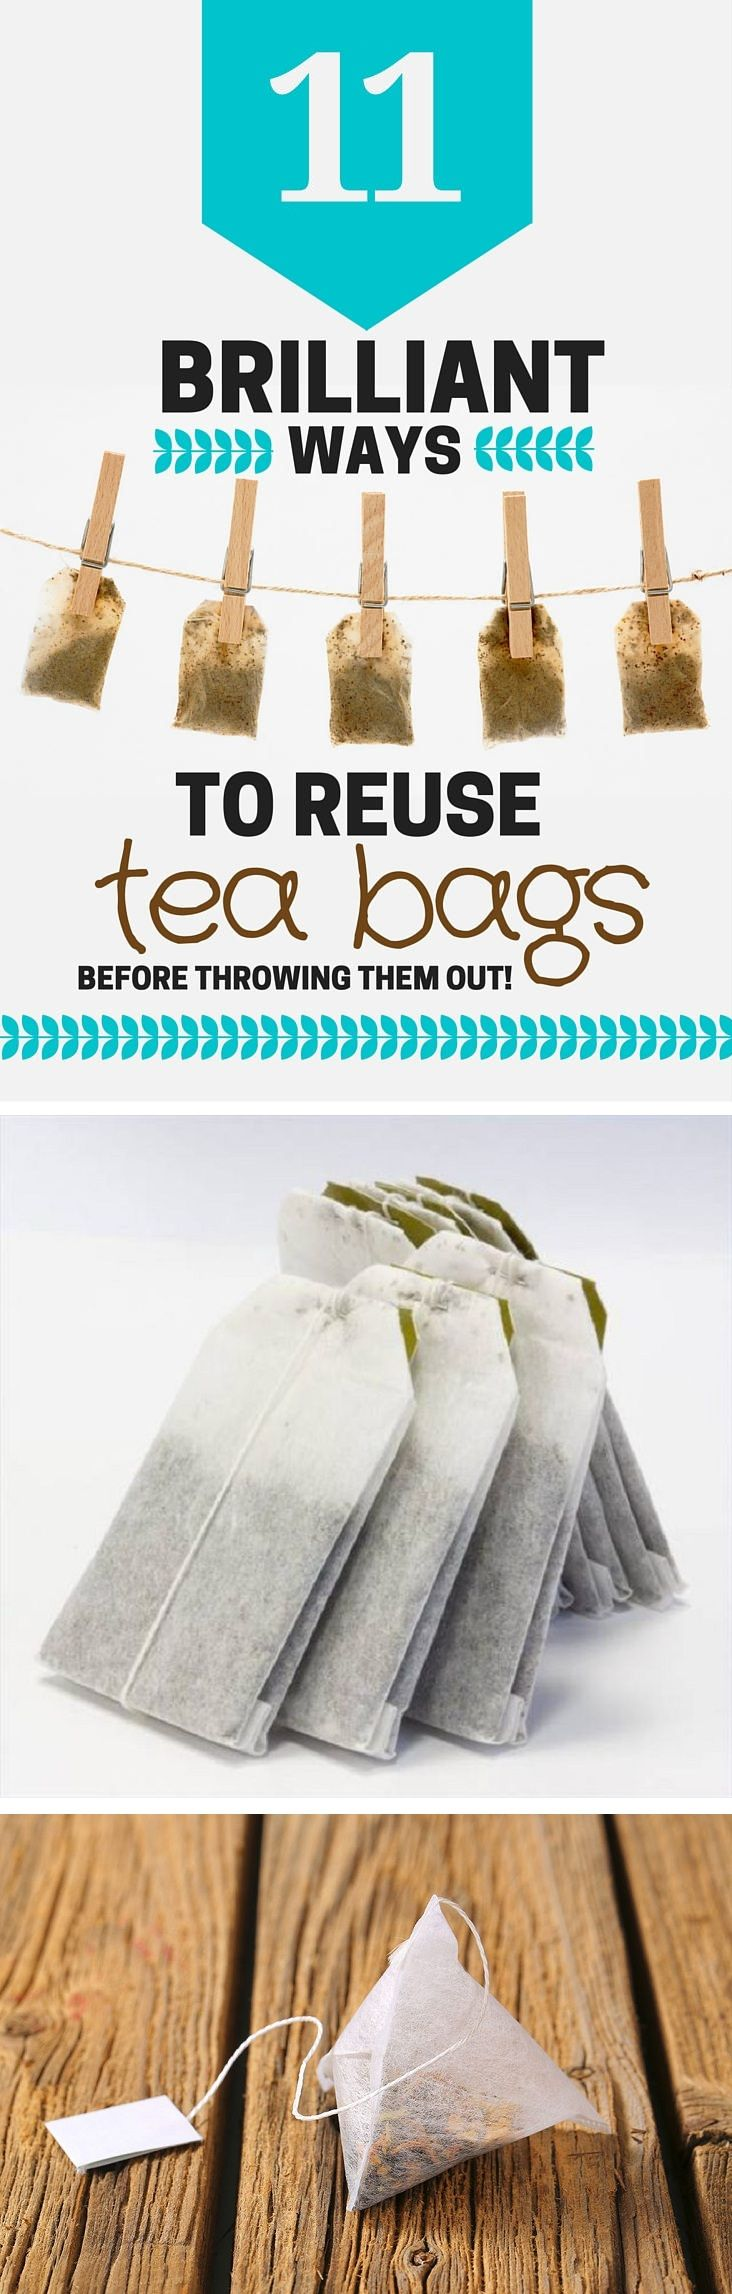 11 Brilliant Ways To Reuse Tea Bags Before Throwing Them Out!